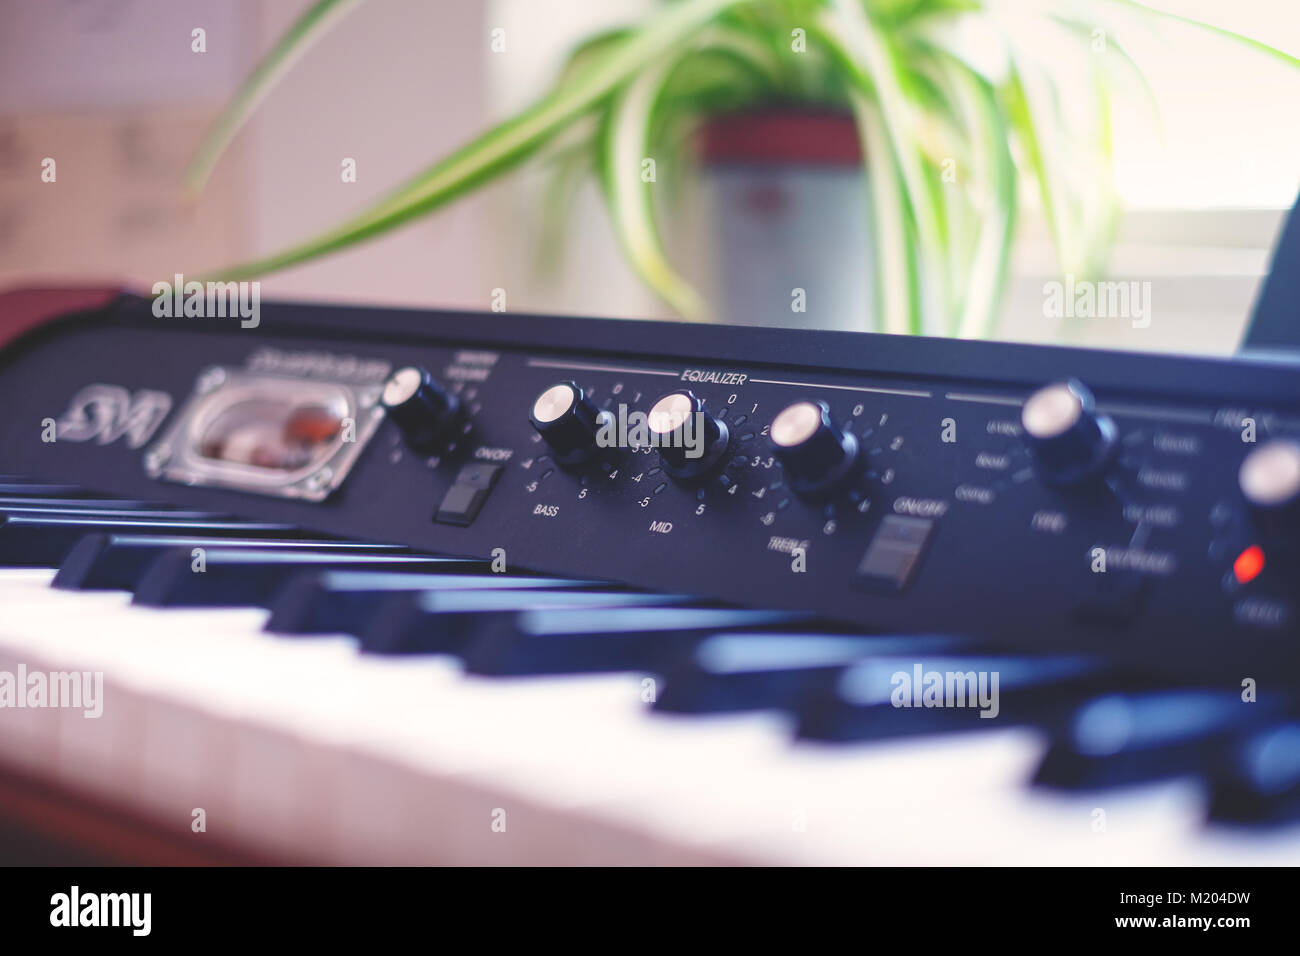 Korg Music Stock Photos & Korg Music Stock Images - Alamy